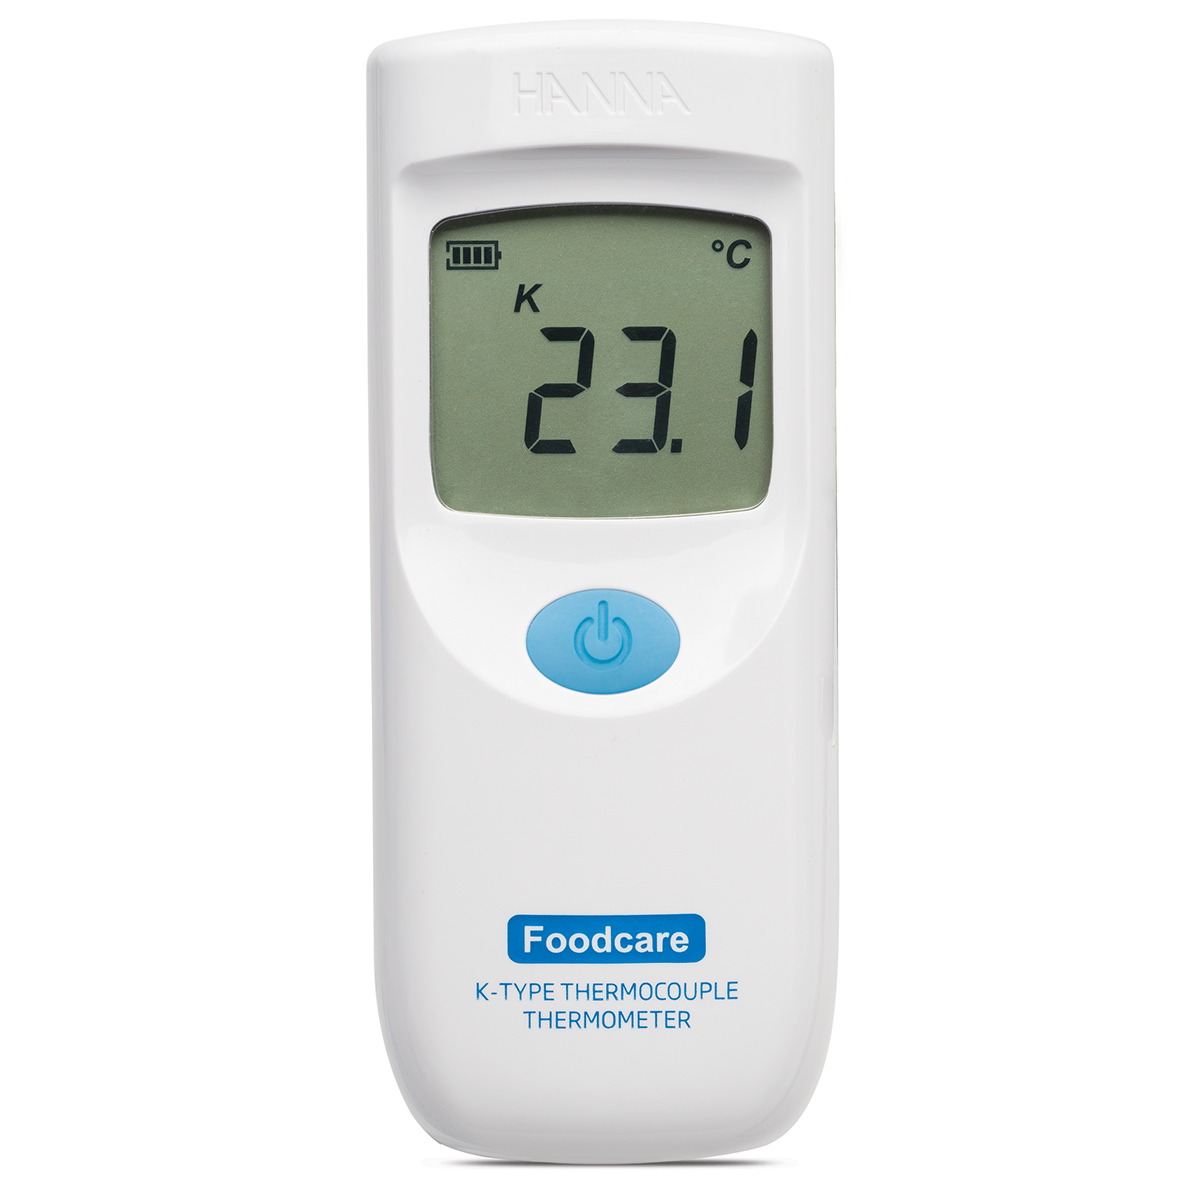 Foodcare K-Type Thermocouple Thermometer with Detachable Probe - HI935001